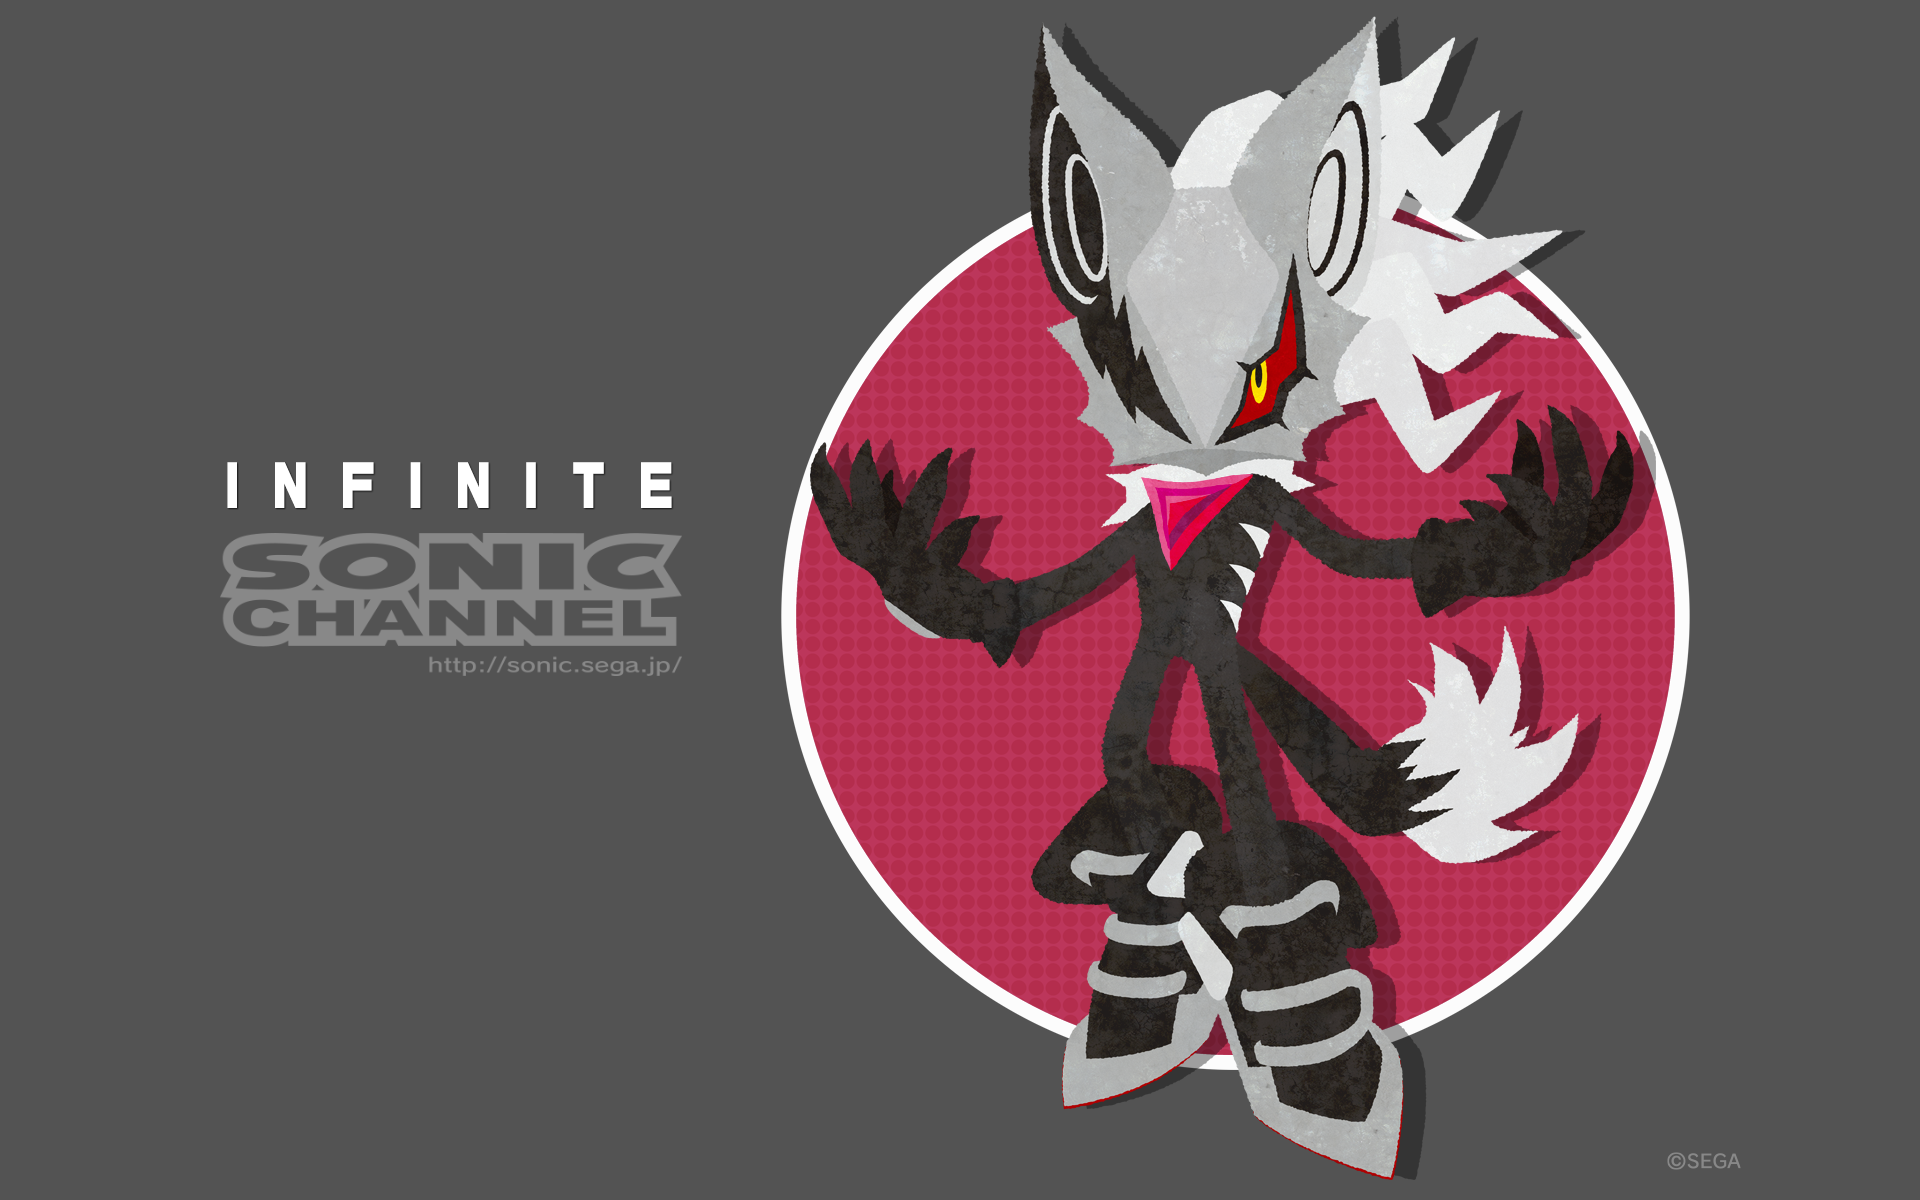 http://sonic.sega.jp/SonicChannel/enjoy/image/wallpaper_155_infinite_01_pc.png